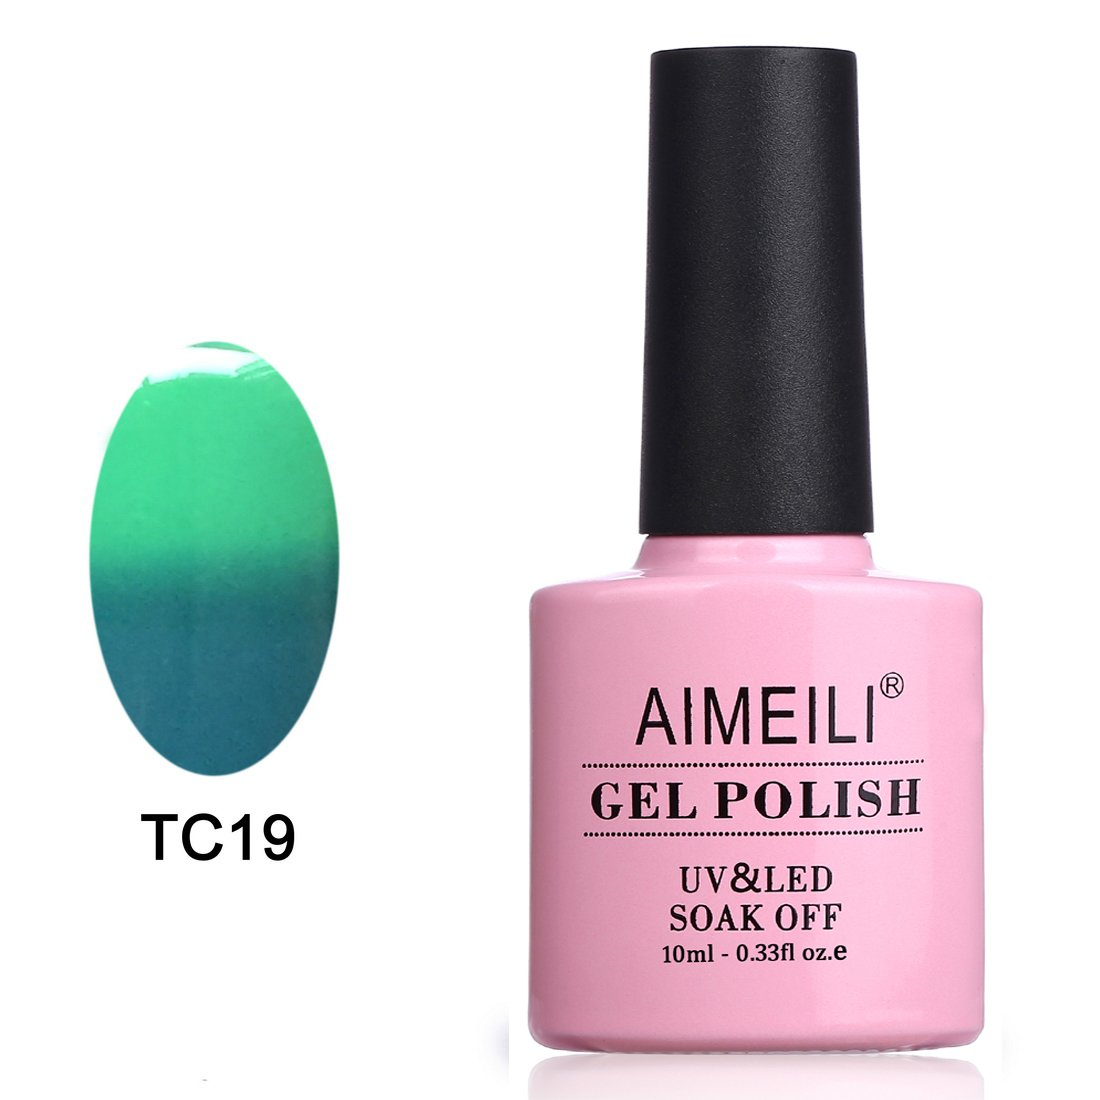 AIMEILI Soak Off UV LED Temperature Color Changing Chameleon Gel Nail Polish - Dryades (TC19) 10ml